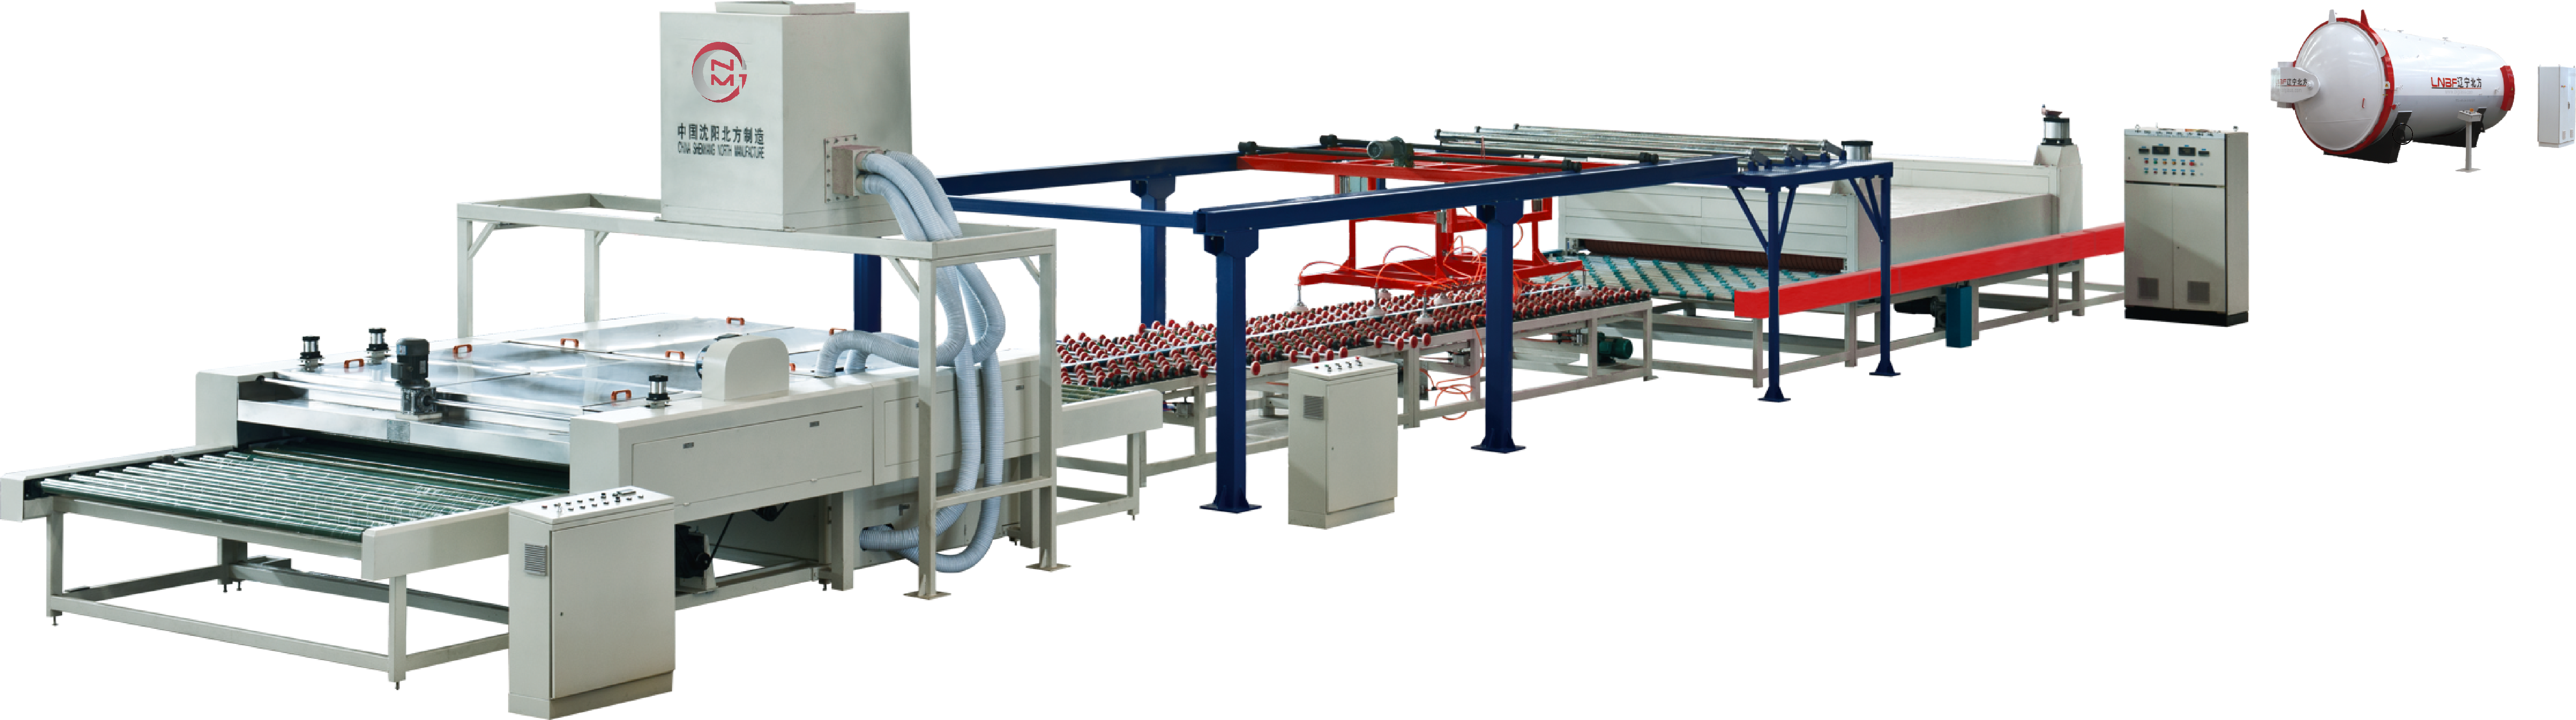 Architecture laminated glass production line